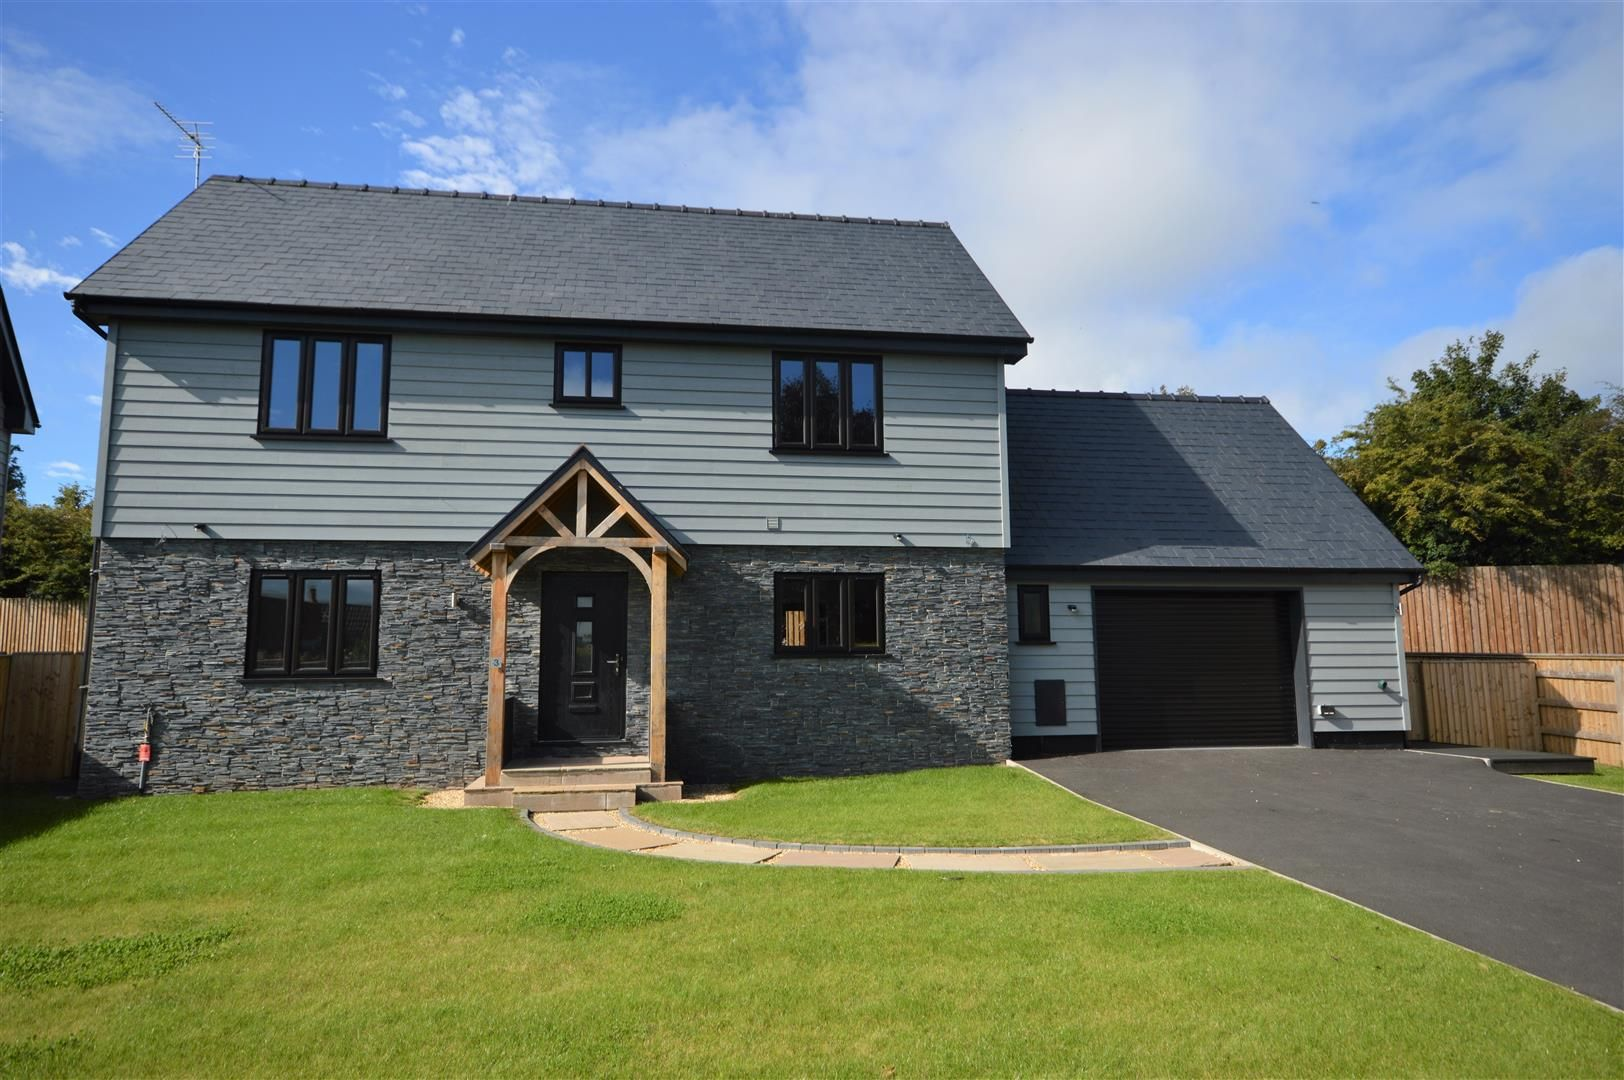 4 bed detached for sale in Brimfield  - Property Image 1